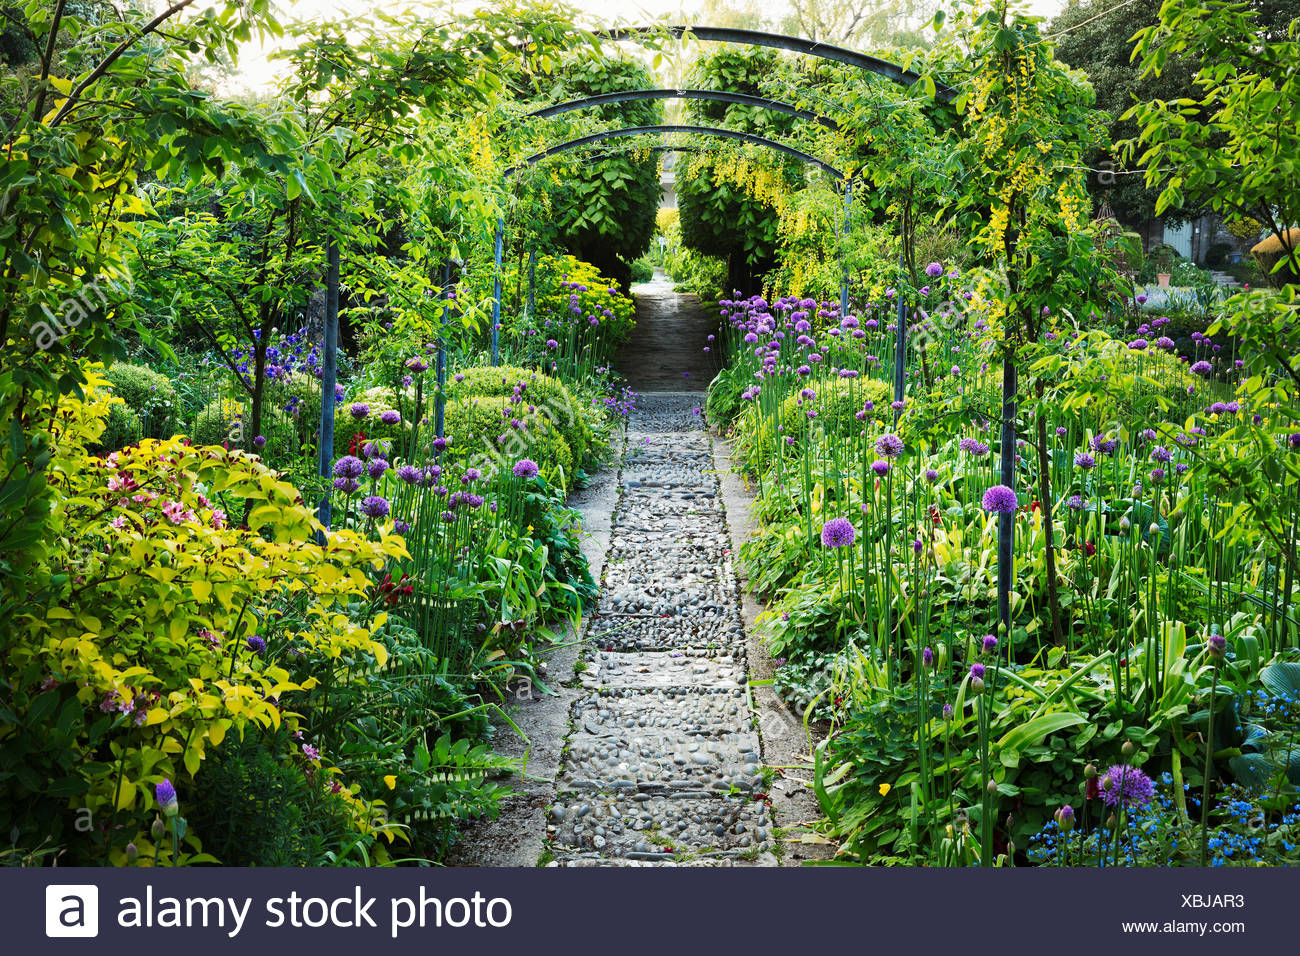 Mature Plants And Shrubs In An English Garden Pathway And Pergola